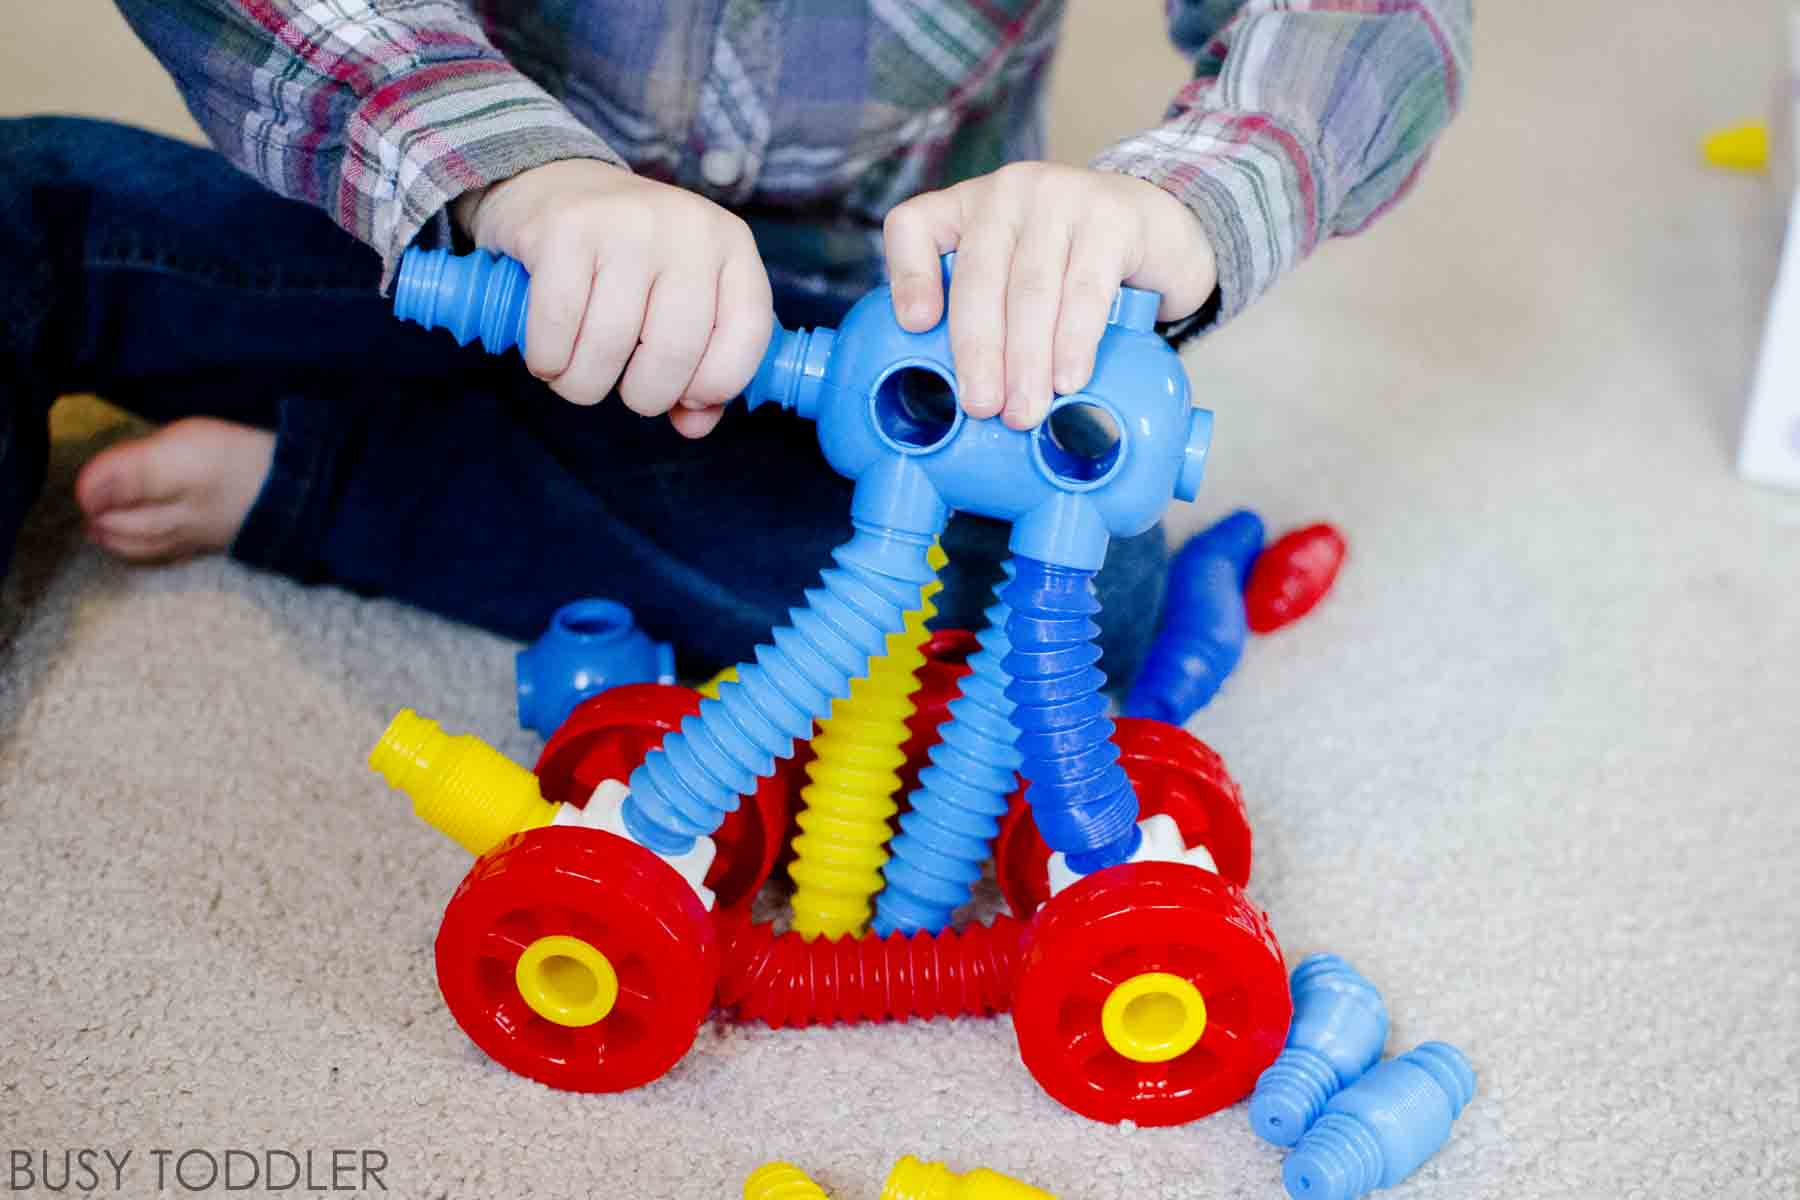 5 UNIQUE WAYS TO BUILD: Thanking beyond blocks with these 5 great building ideas for toddlers and preschoolers. Kids will love these simple indoor activities and toys from Lakeshore Learning. #ad